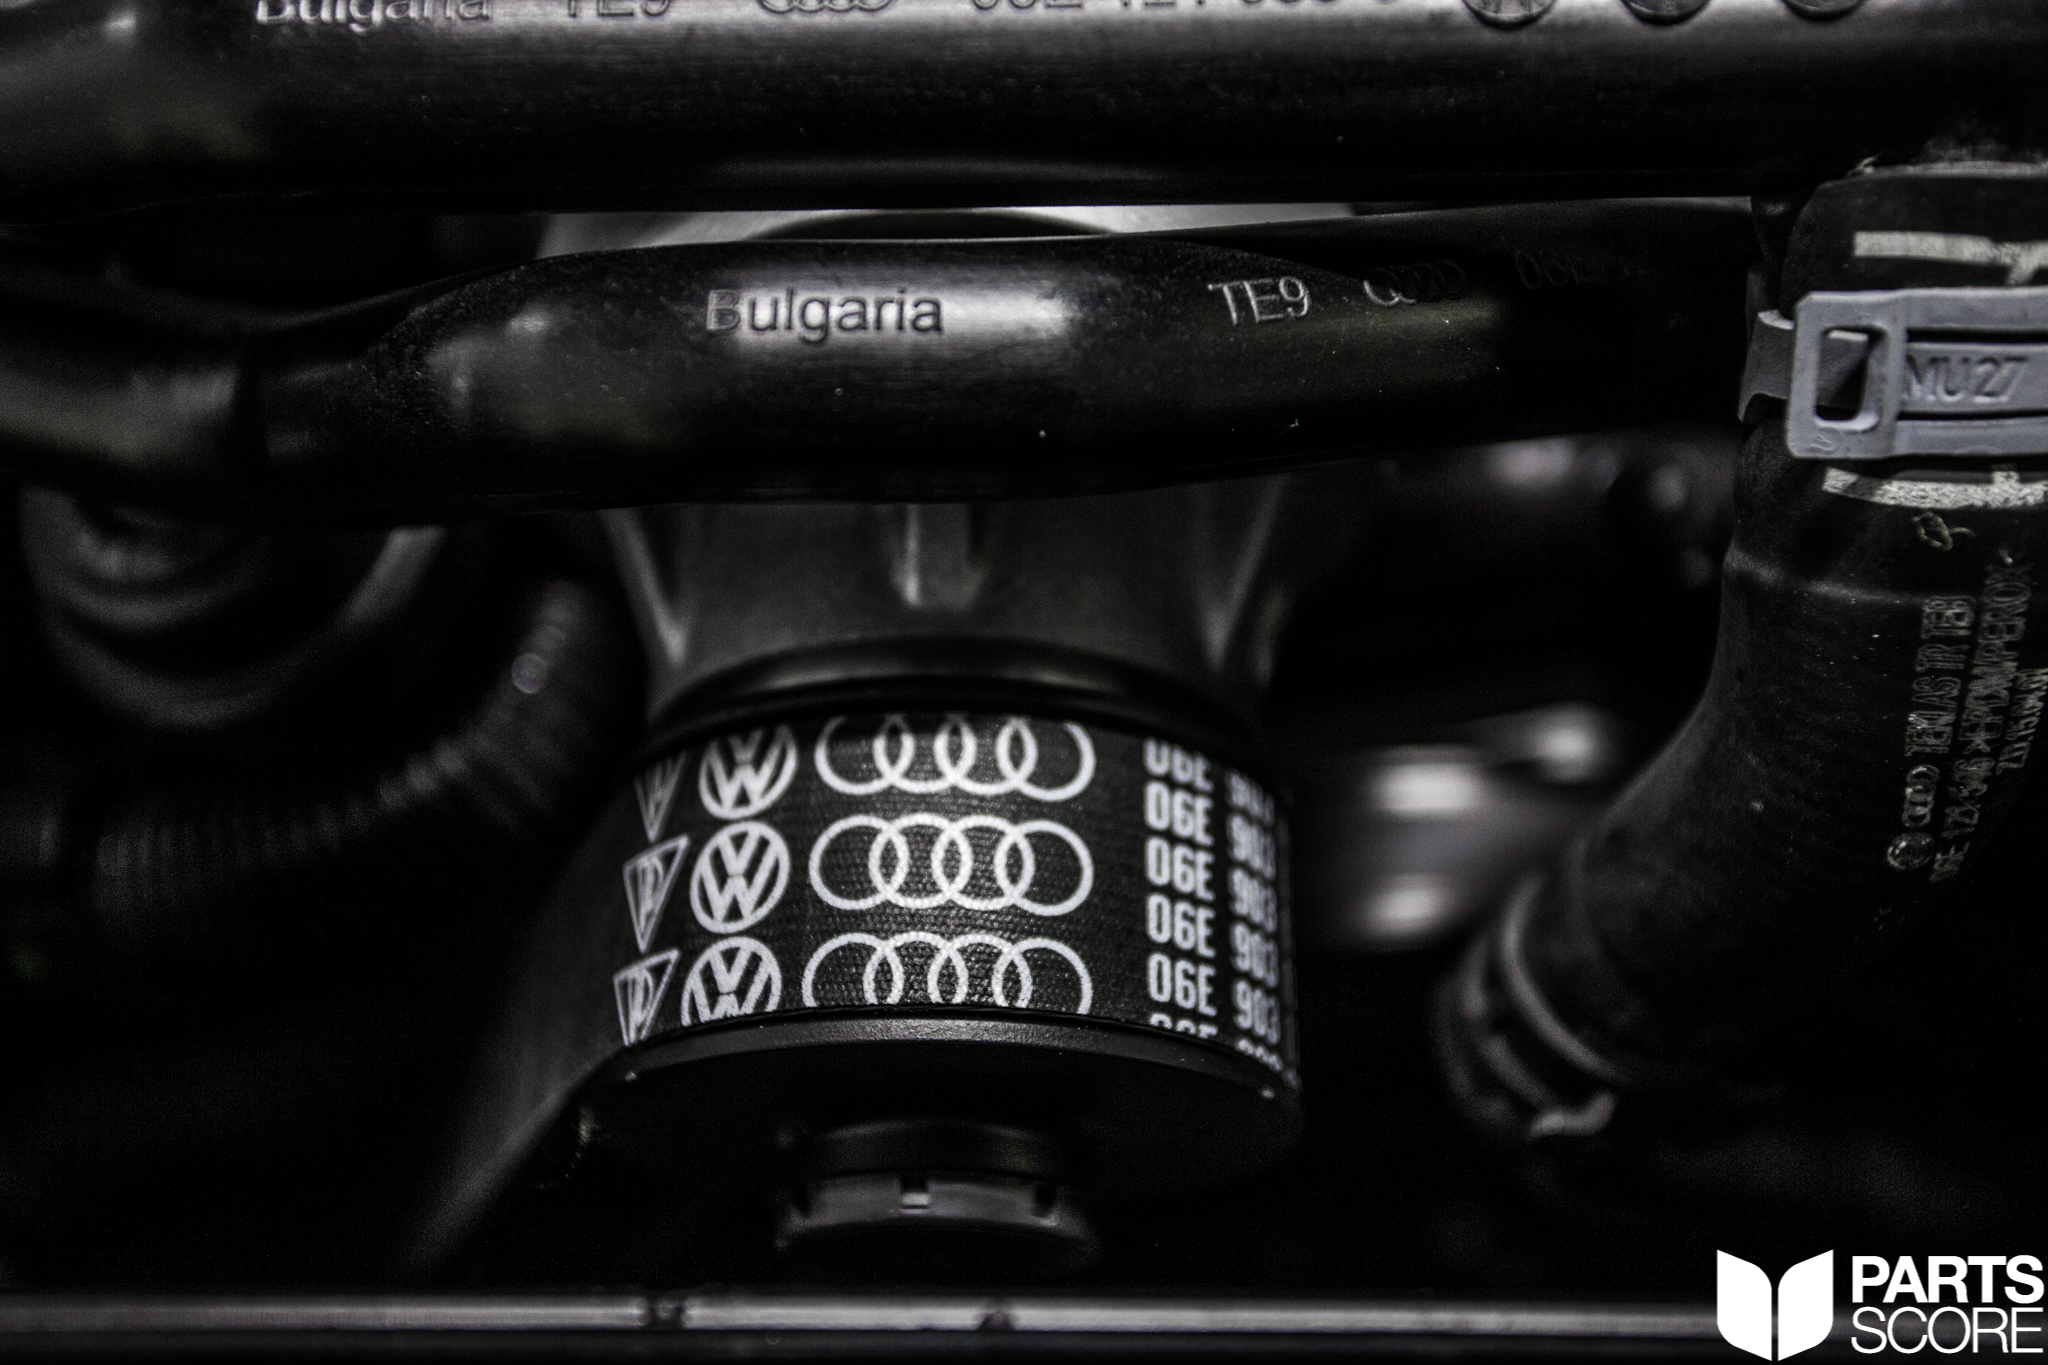 partsscore, audi, audis4, audis, s4, quattro, spacers, ecstuning, ecs tuning, giactuned, awetuning, spacer, spacers, ecstuning, supercharged, boost, pulleyupgrade